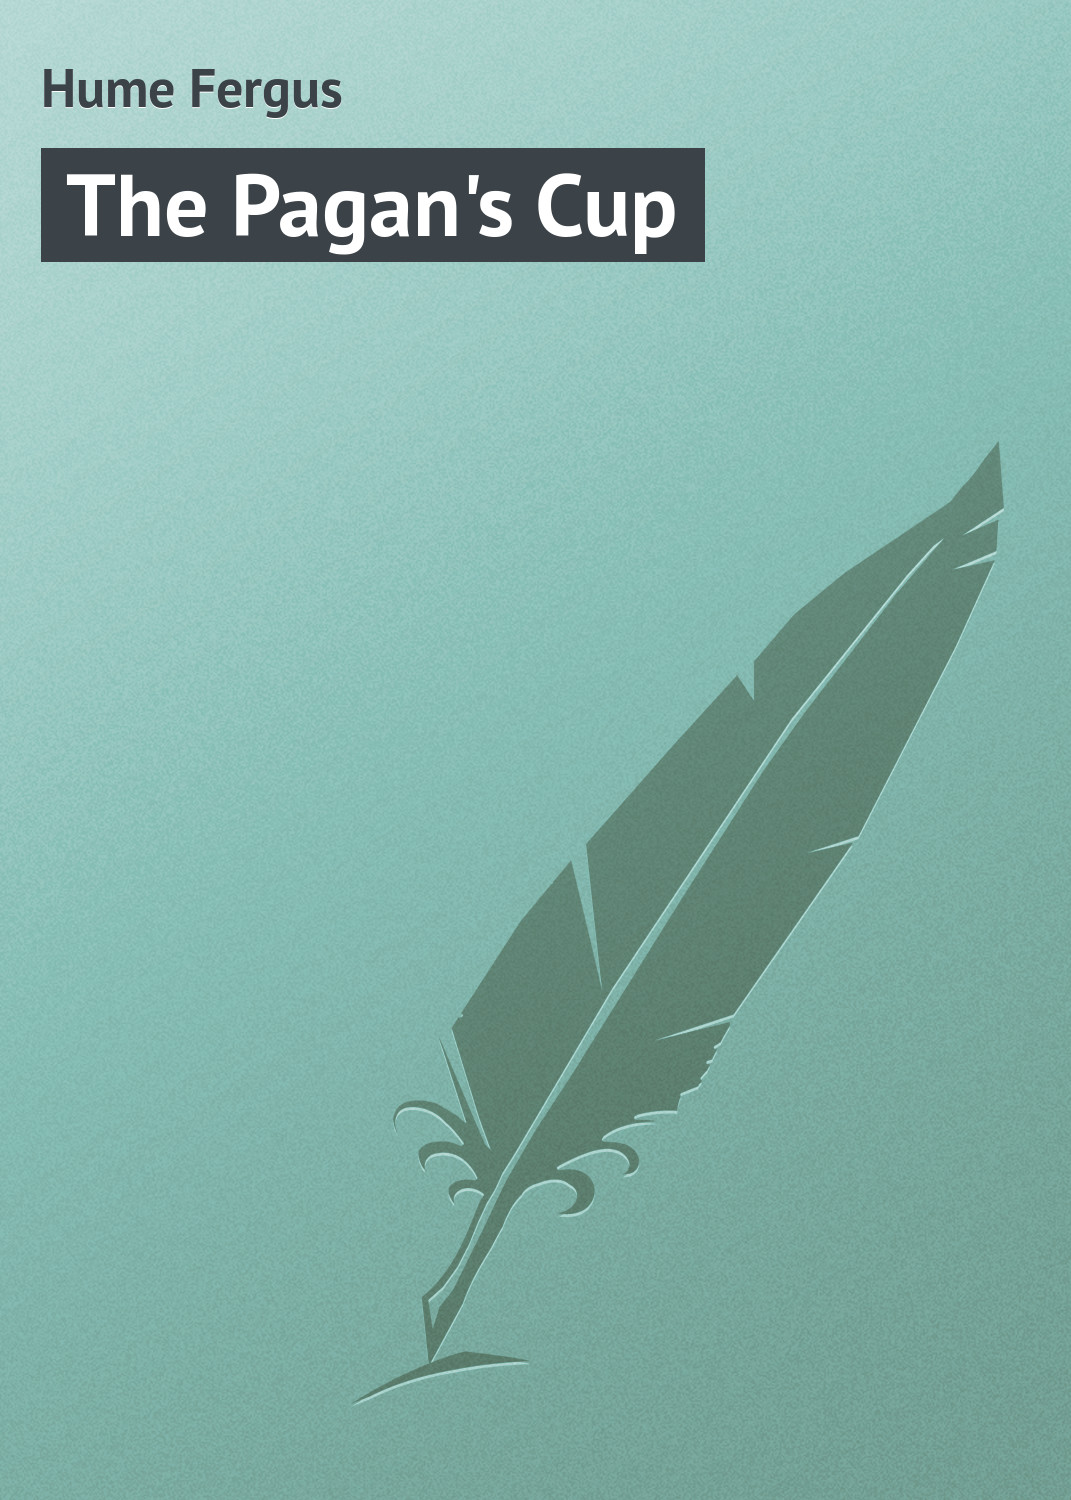 все цены на Hume Fergus The Pagan's Cup